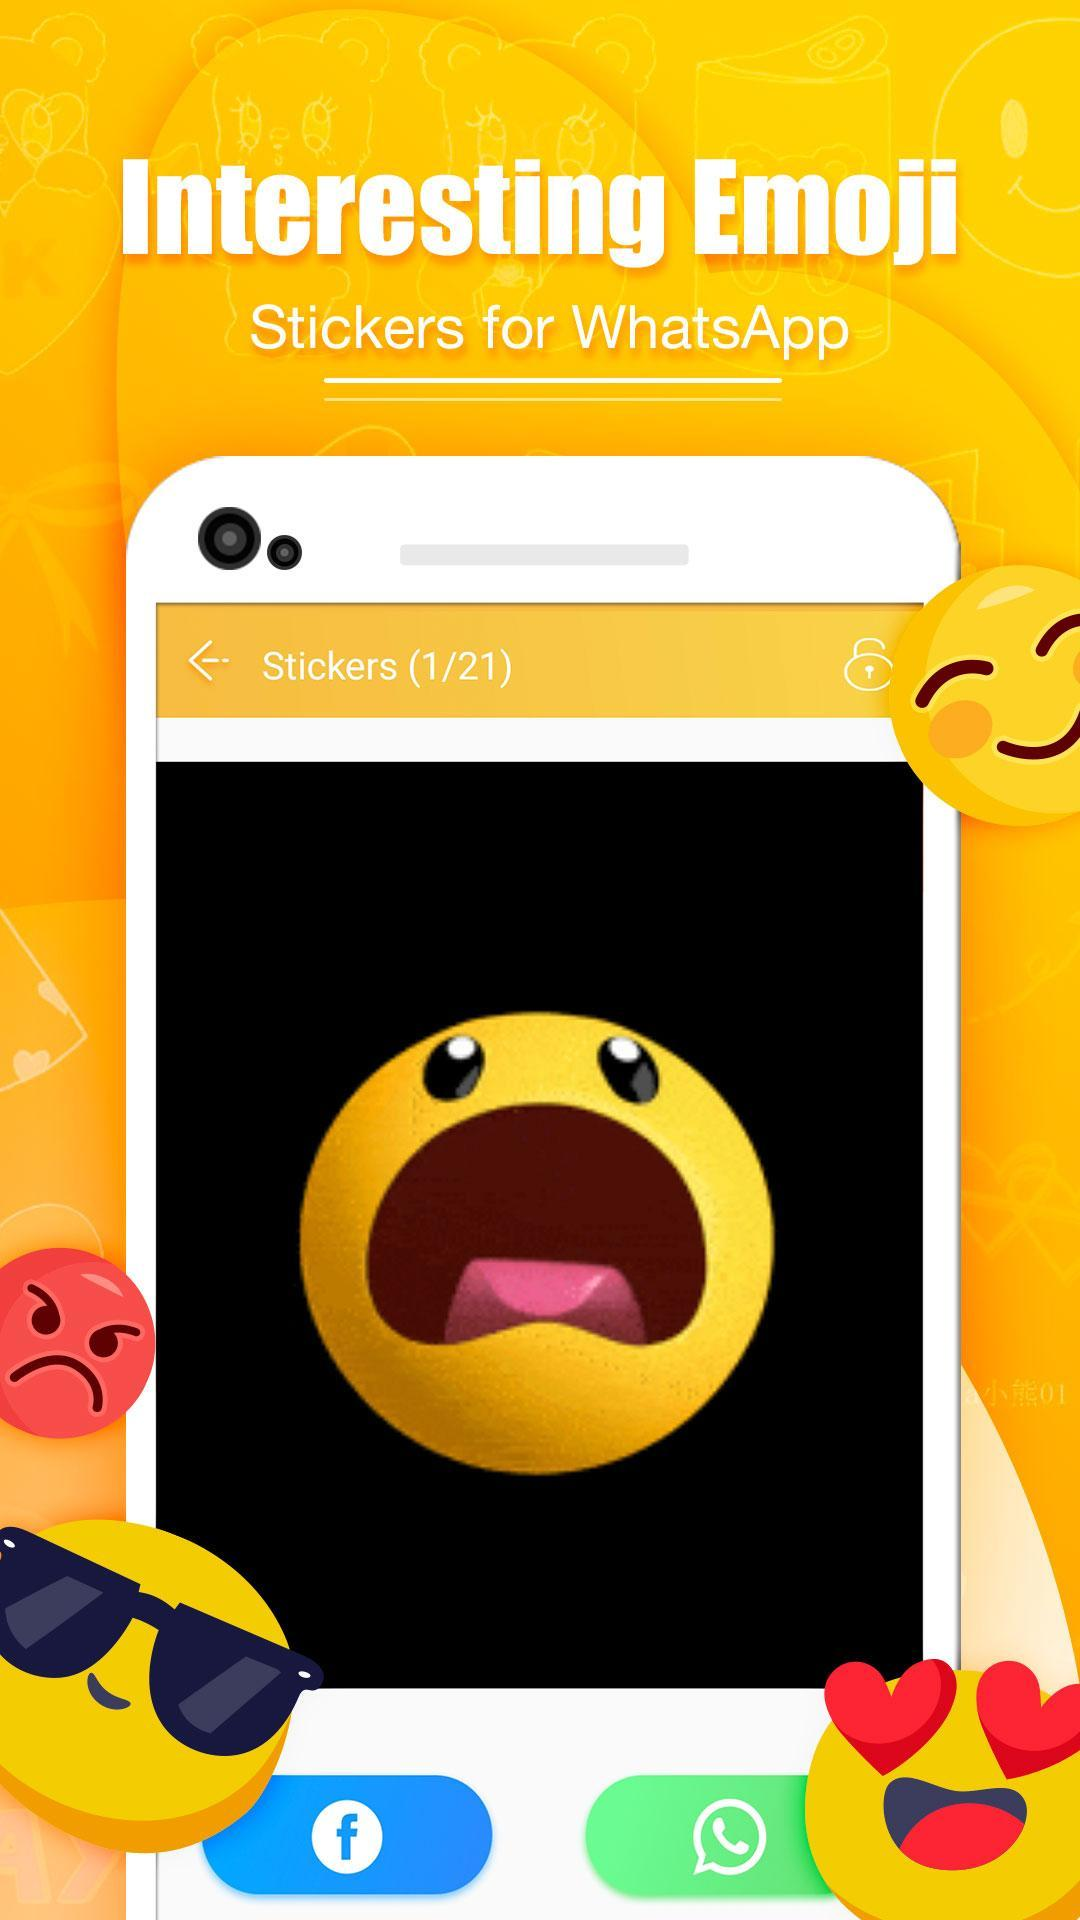 Android Icin Funny Gif Stickers For Whatsapp Apk Yi Indir